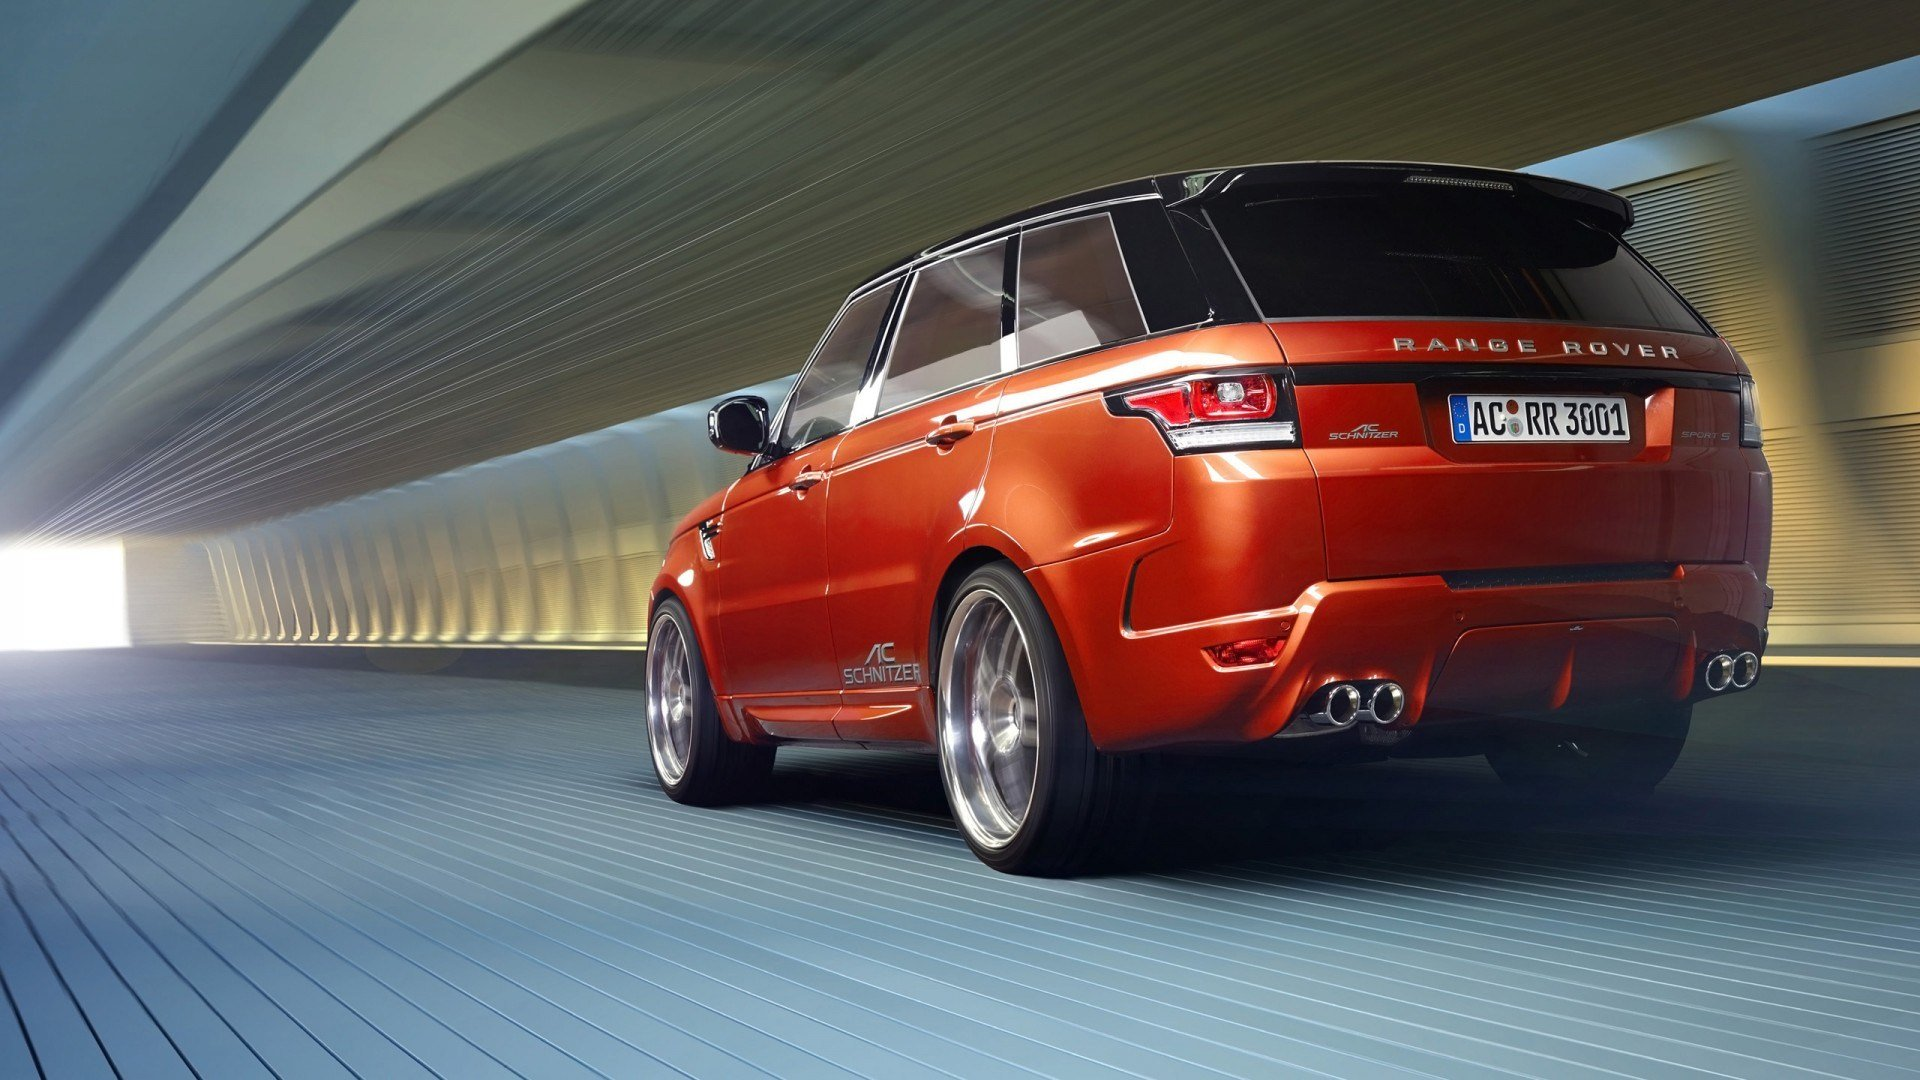 Latest 2014 Ac Schnitzer Range Rover Sport 2 Wallpaper Hd Car Free Download